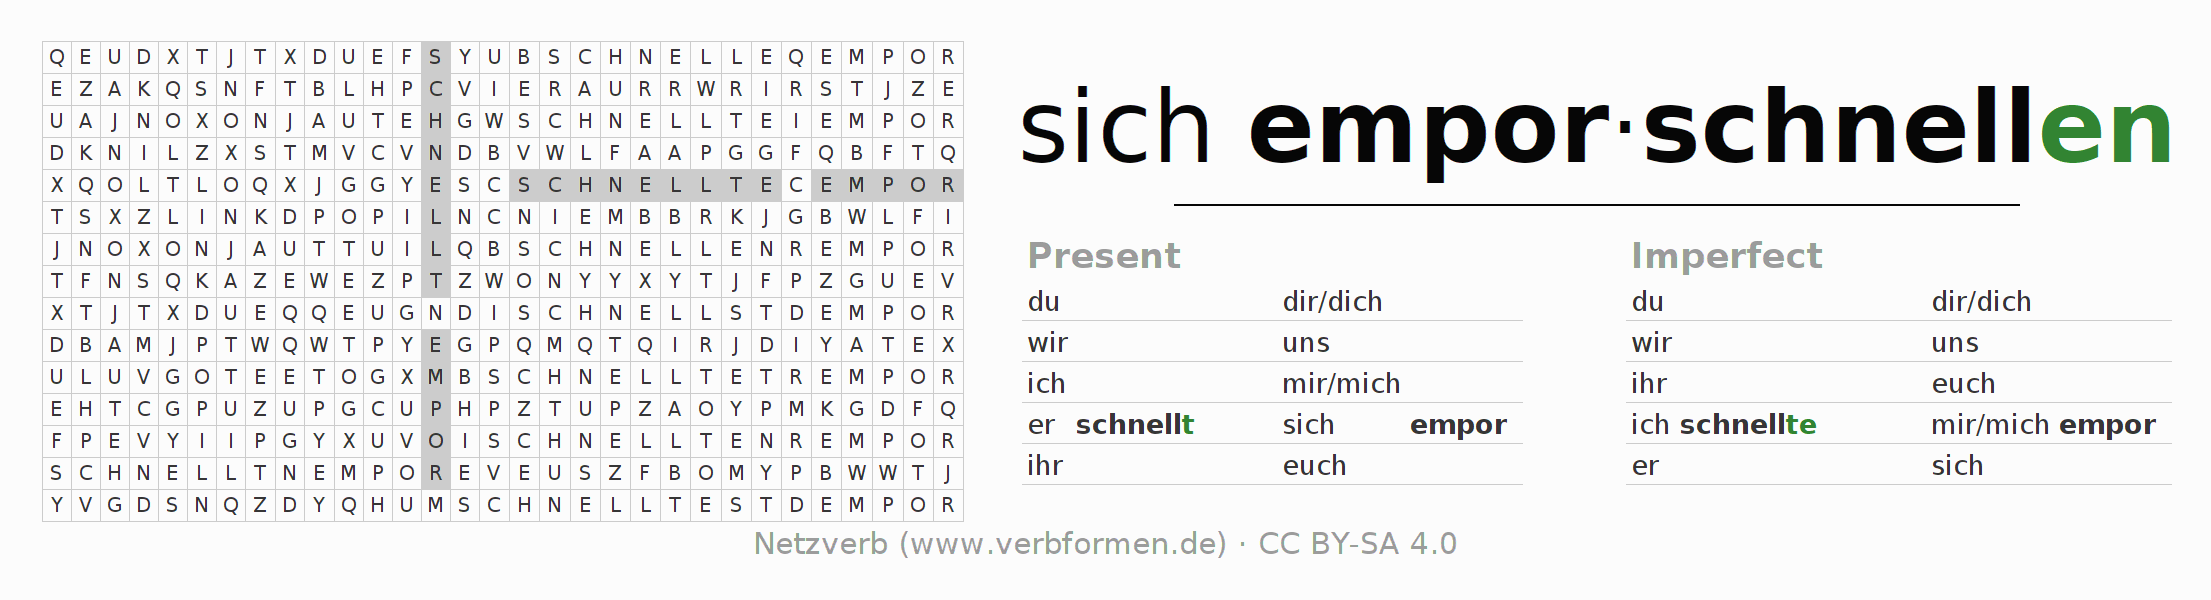 Word search puzzle for the conjugation of the verb sich emporschnellen (ist)